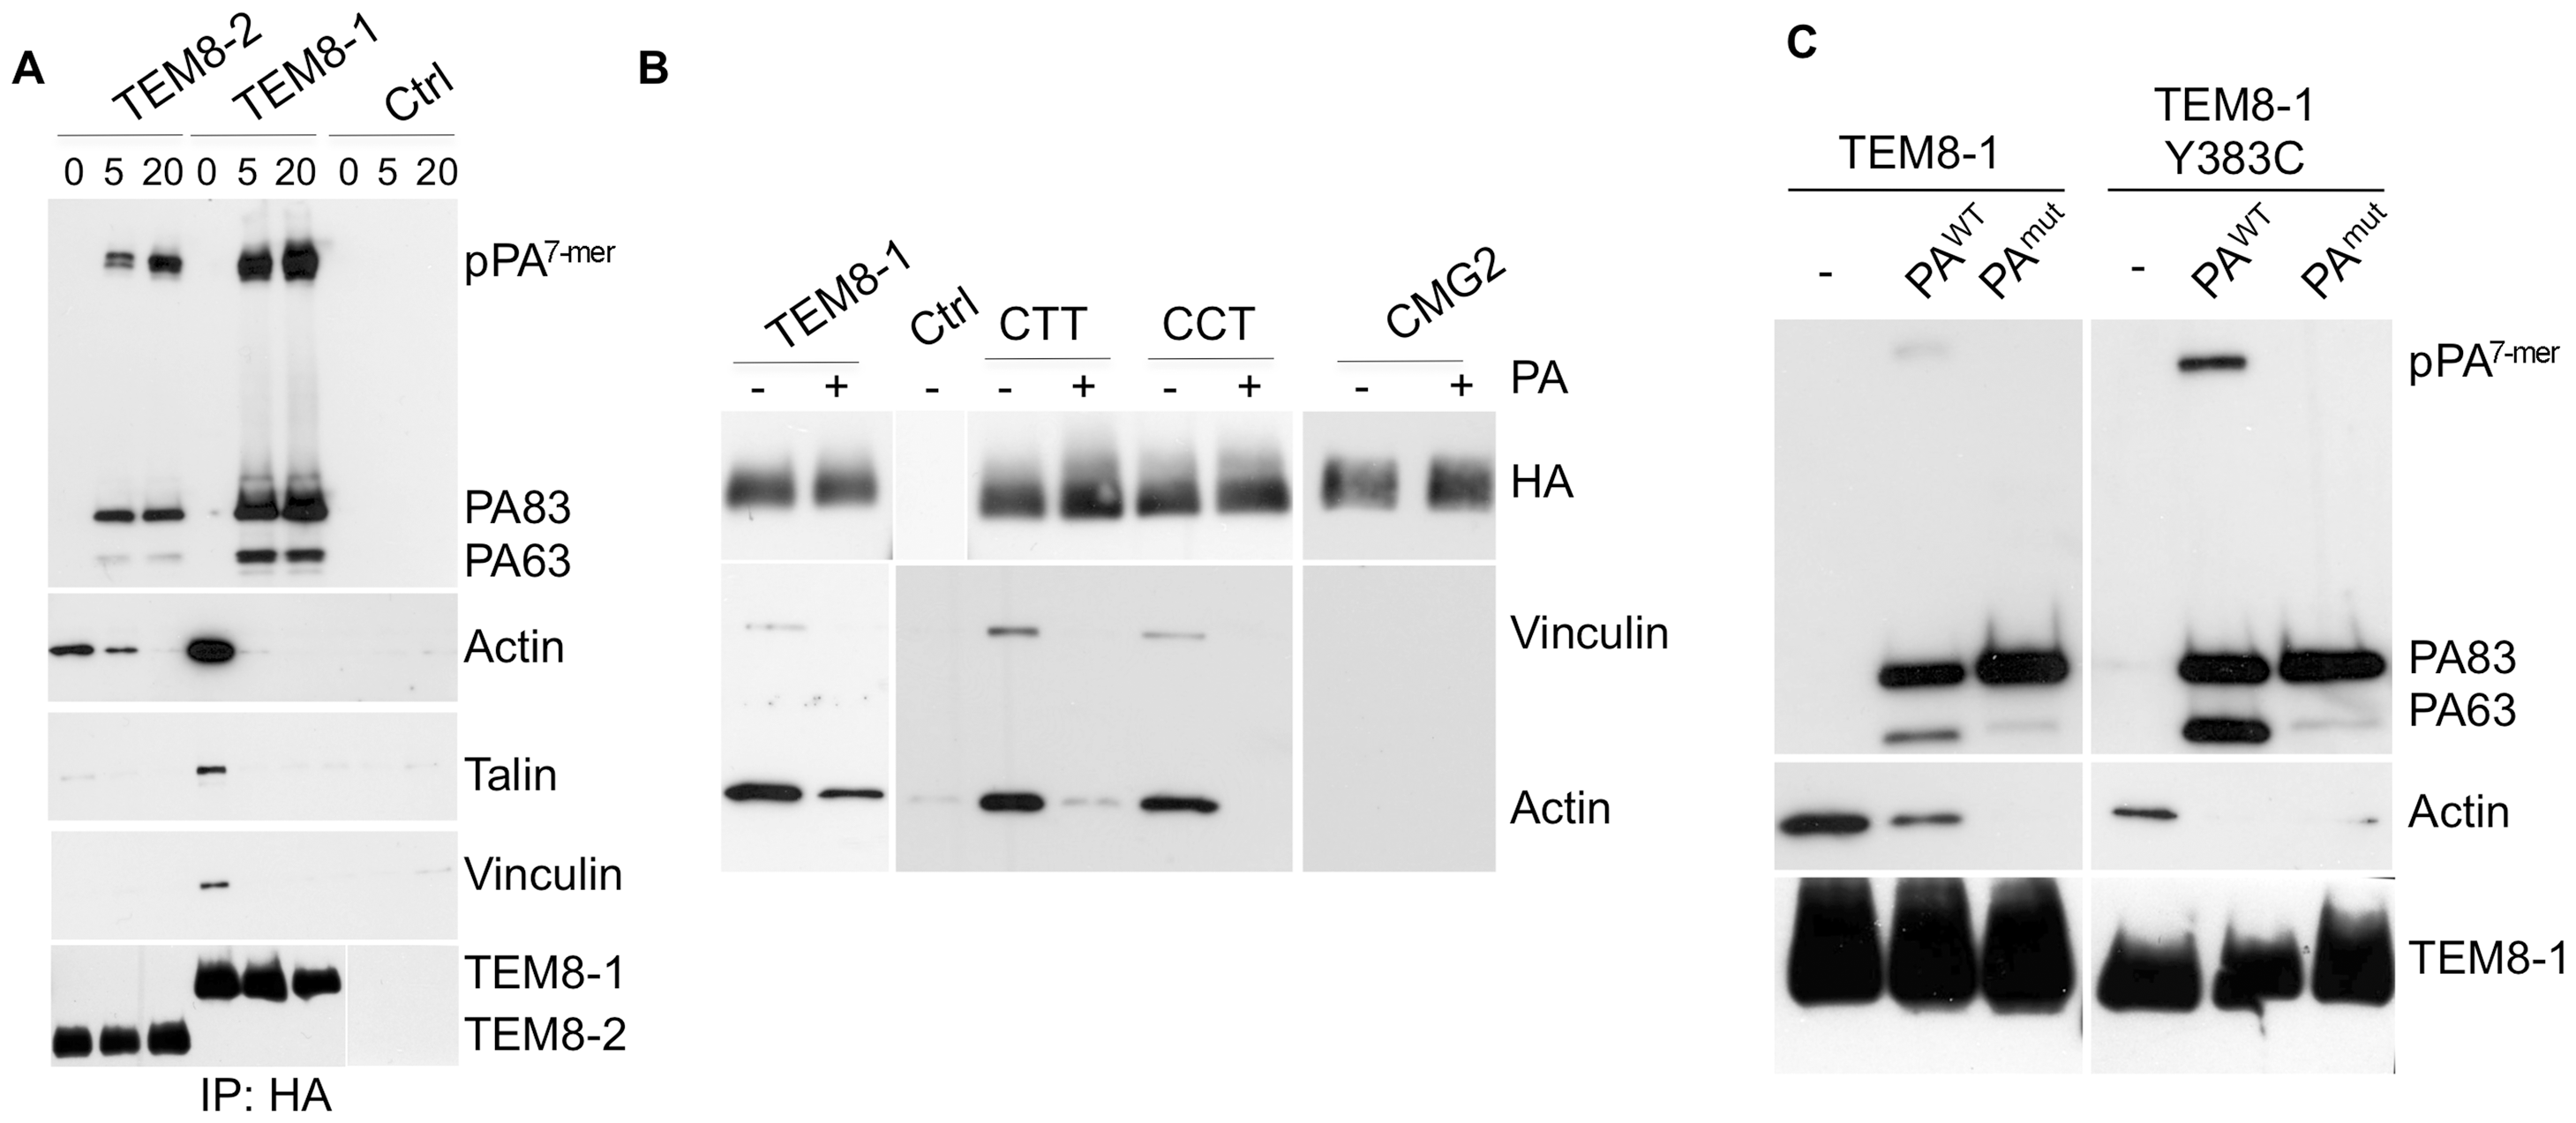 Binding of PA leads to the release of the actin-interacting complex form the cytosolic tail of TEM8.